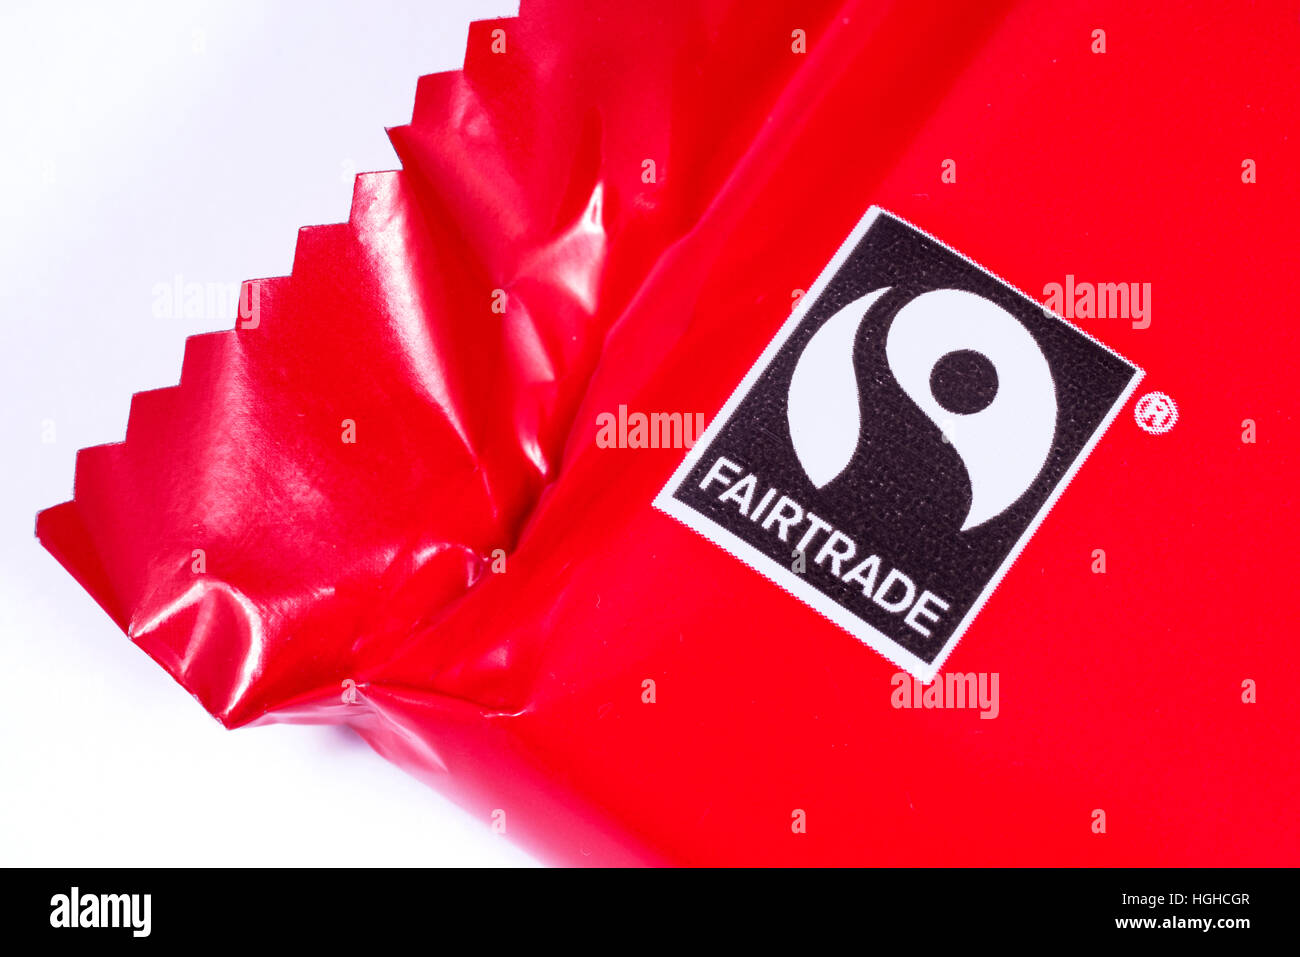 LONDON, UK - JANUARY 4TH 2017: A close-up shot of the Fairtrade logo on a food product, on 4th January 2017. - Stock Image